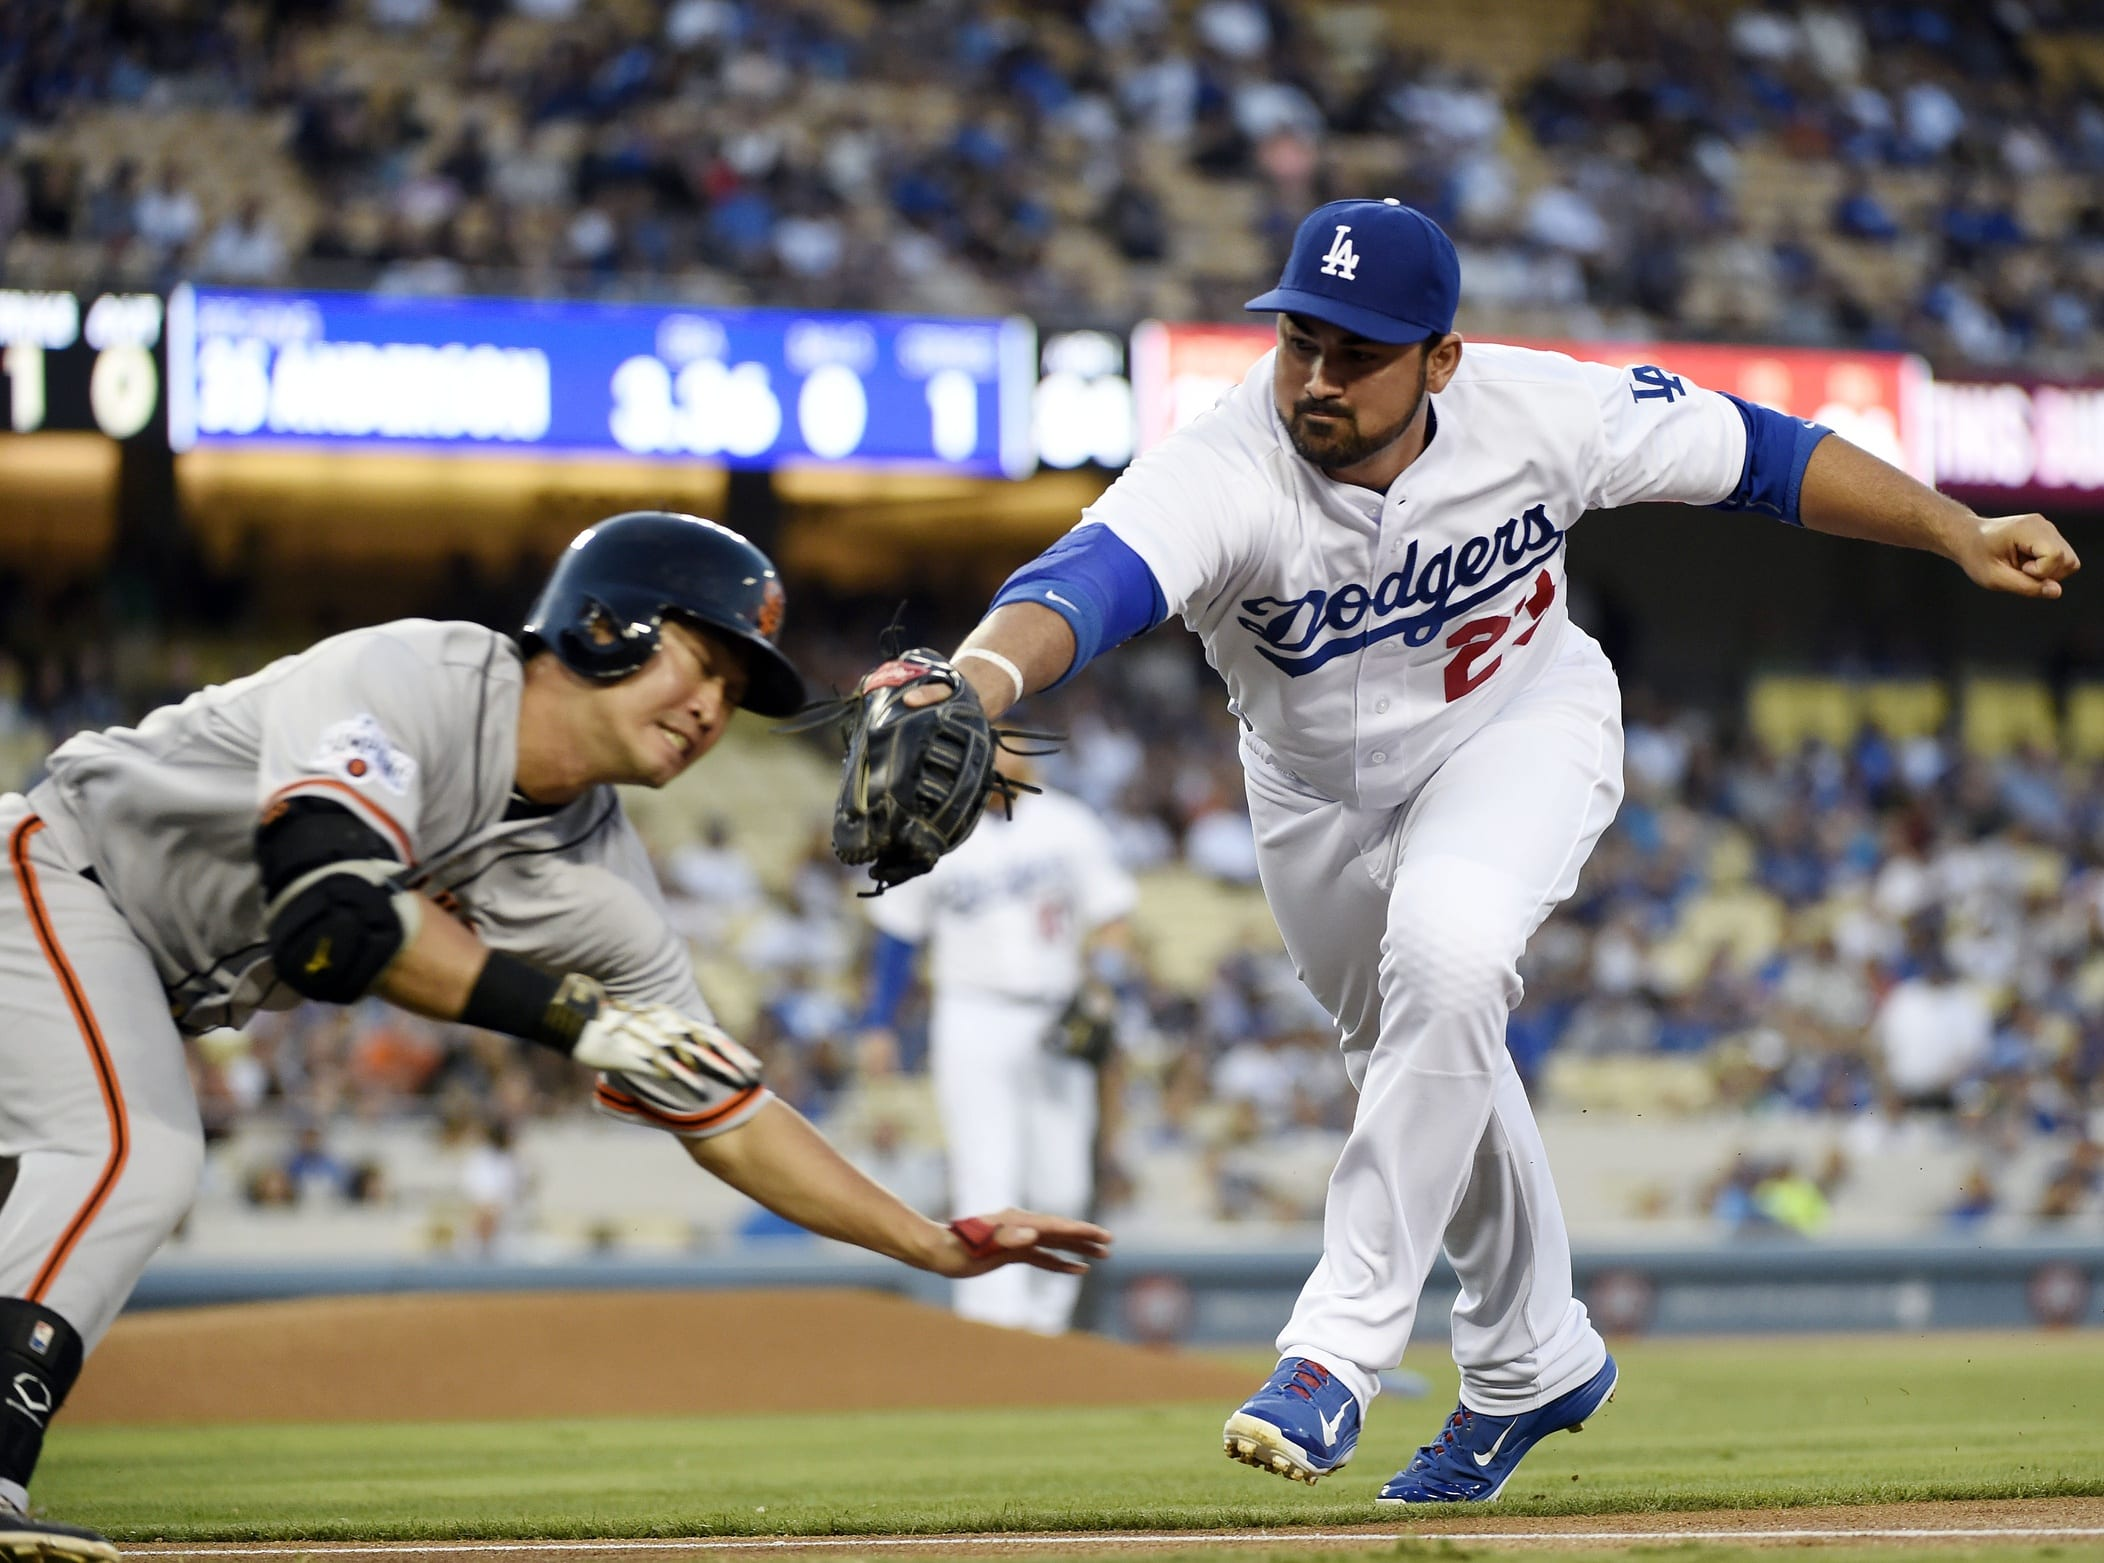 Dodgers News: Adrian Gonzalez Named Finalist For 2015 Gold Glove Award